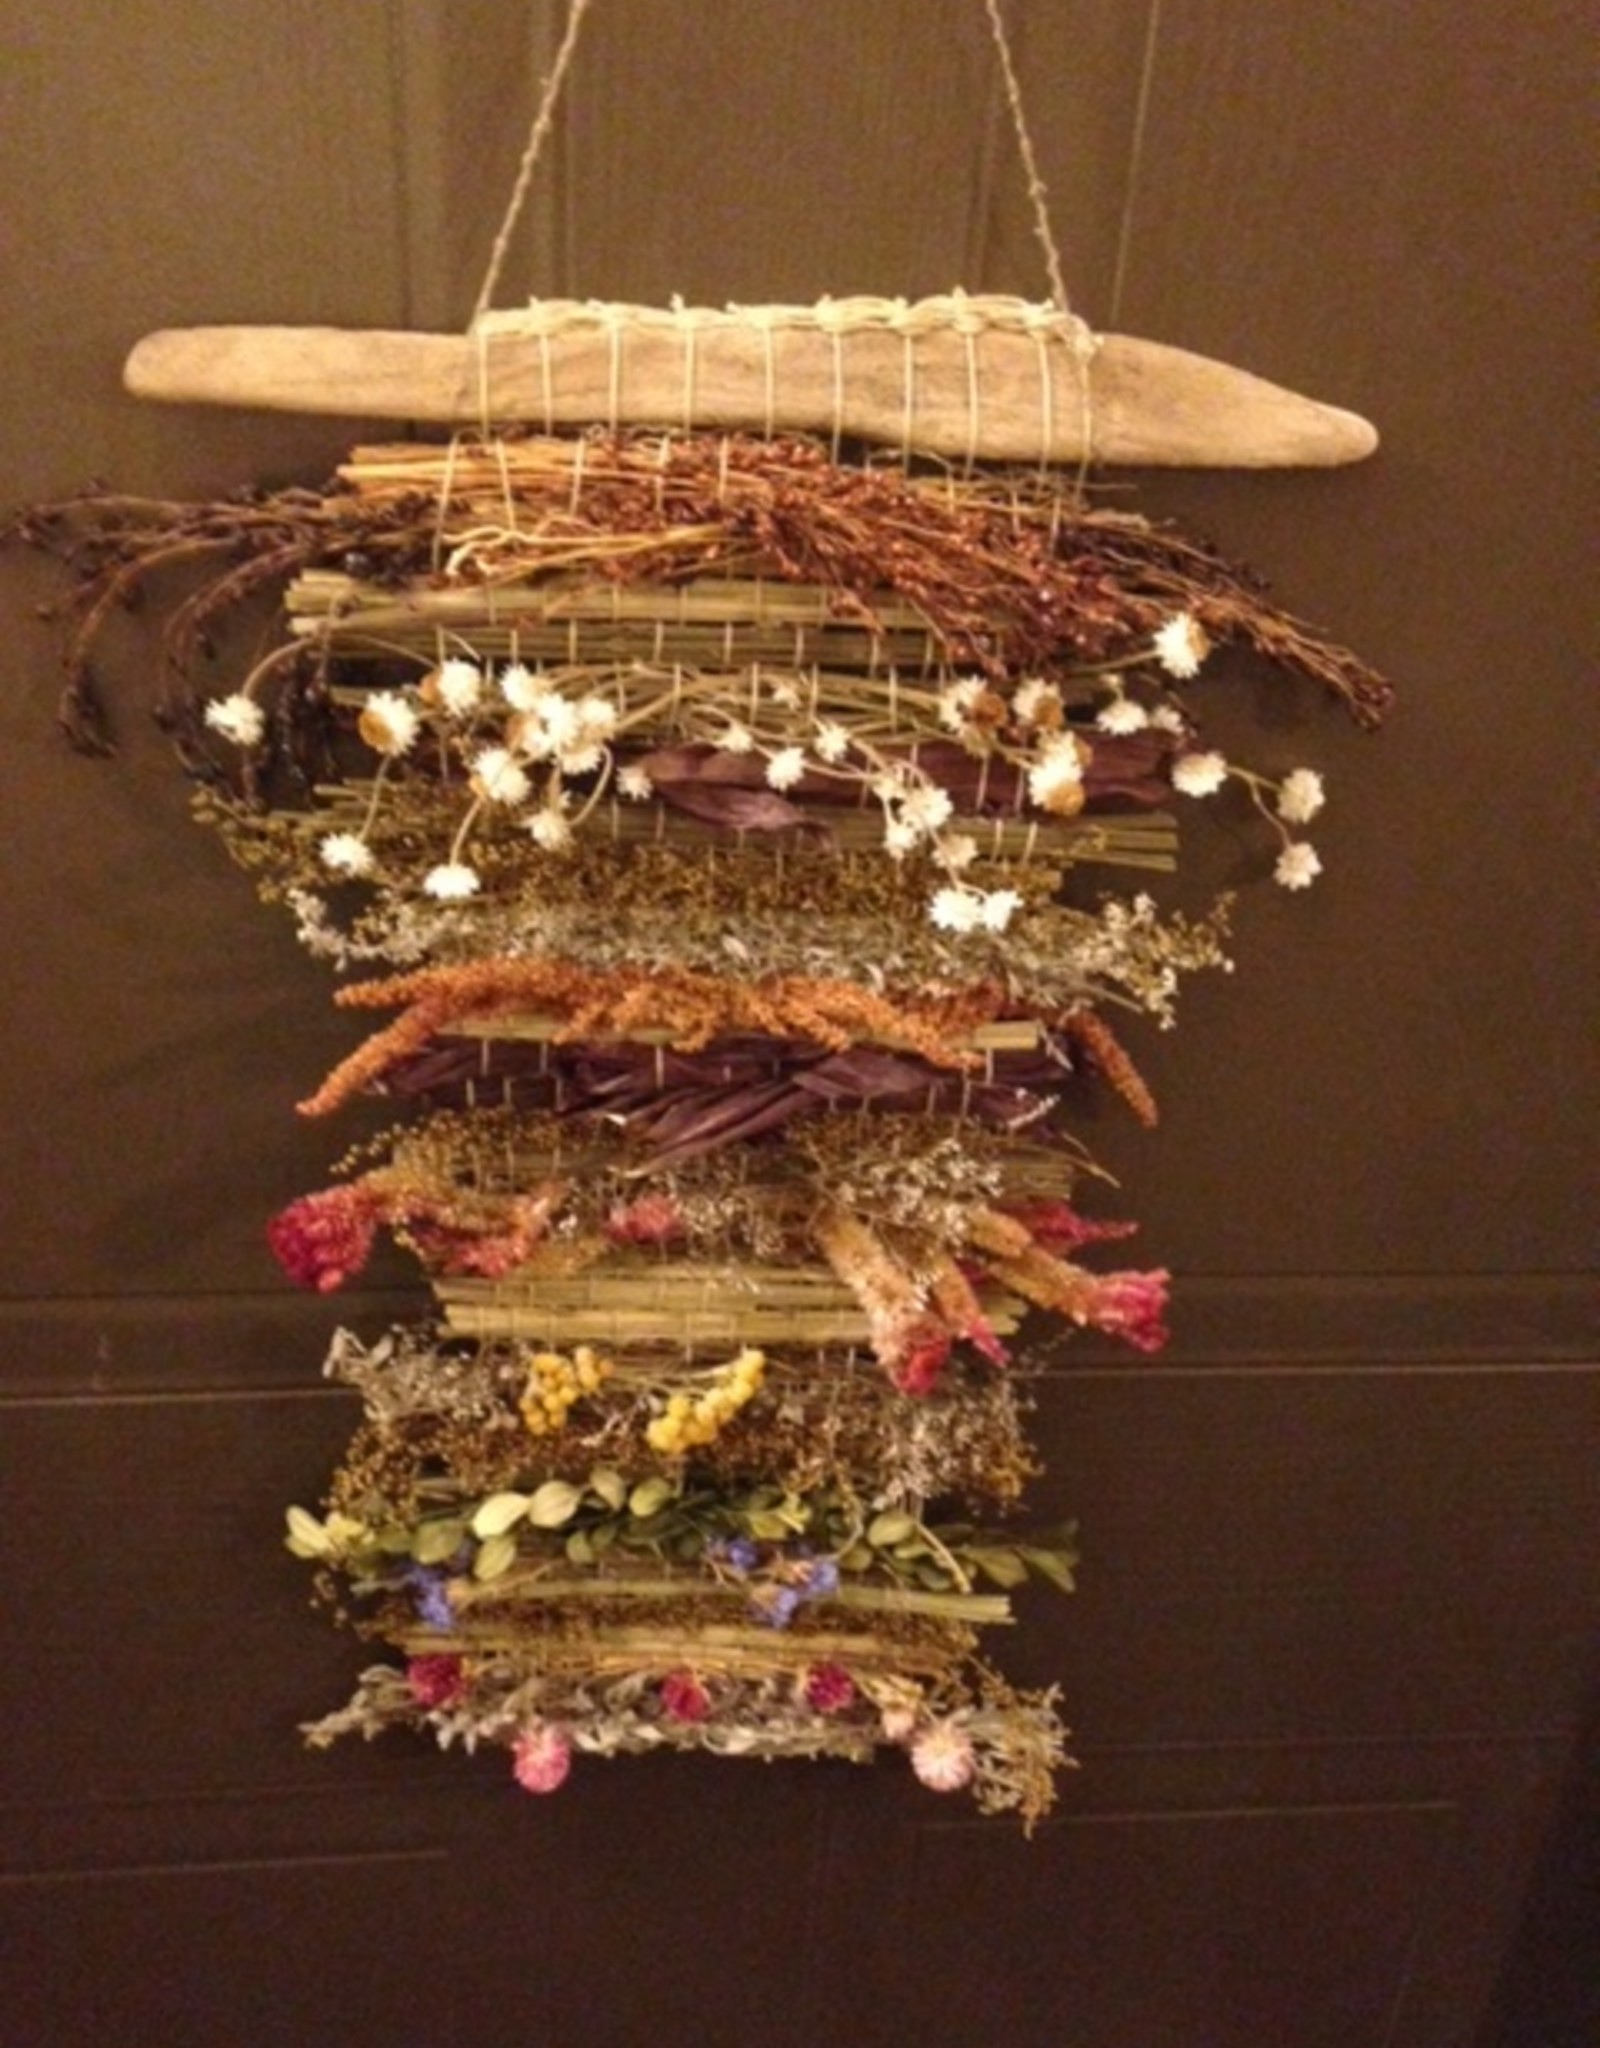 Marsh M Weaving Art Class with Dried Herbs  Wed Jan 27  1 -3:30 pm